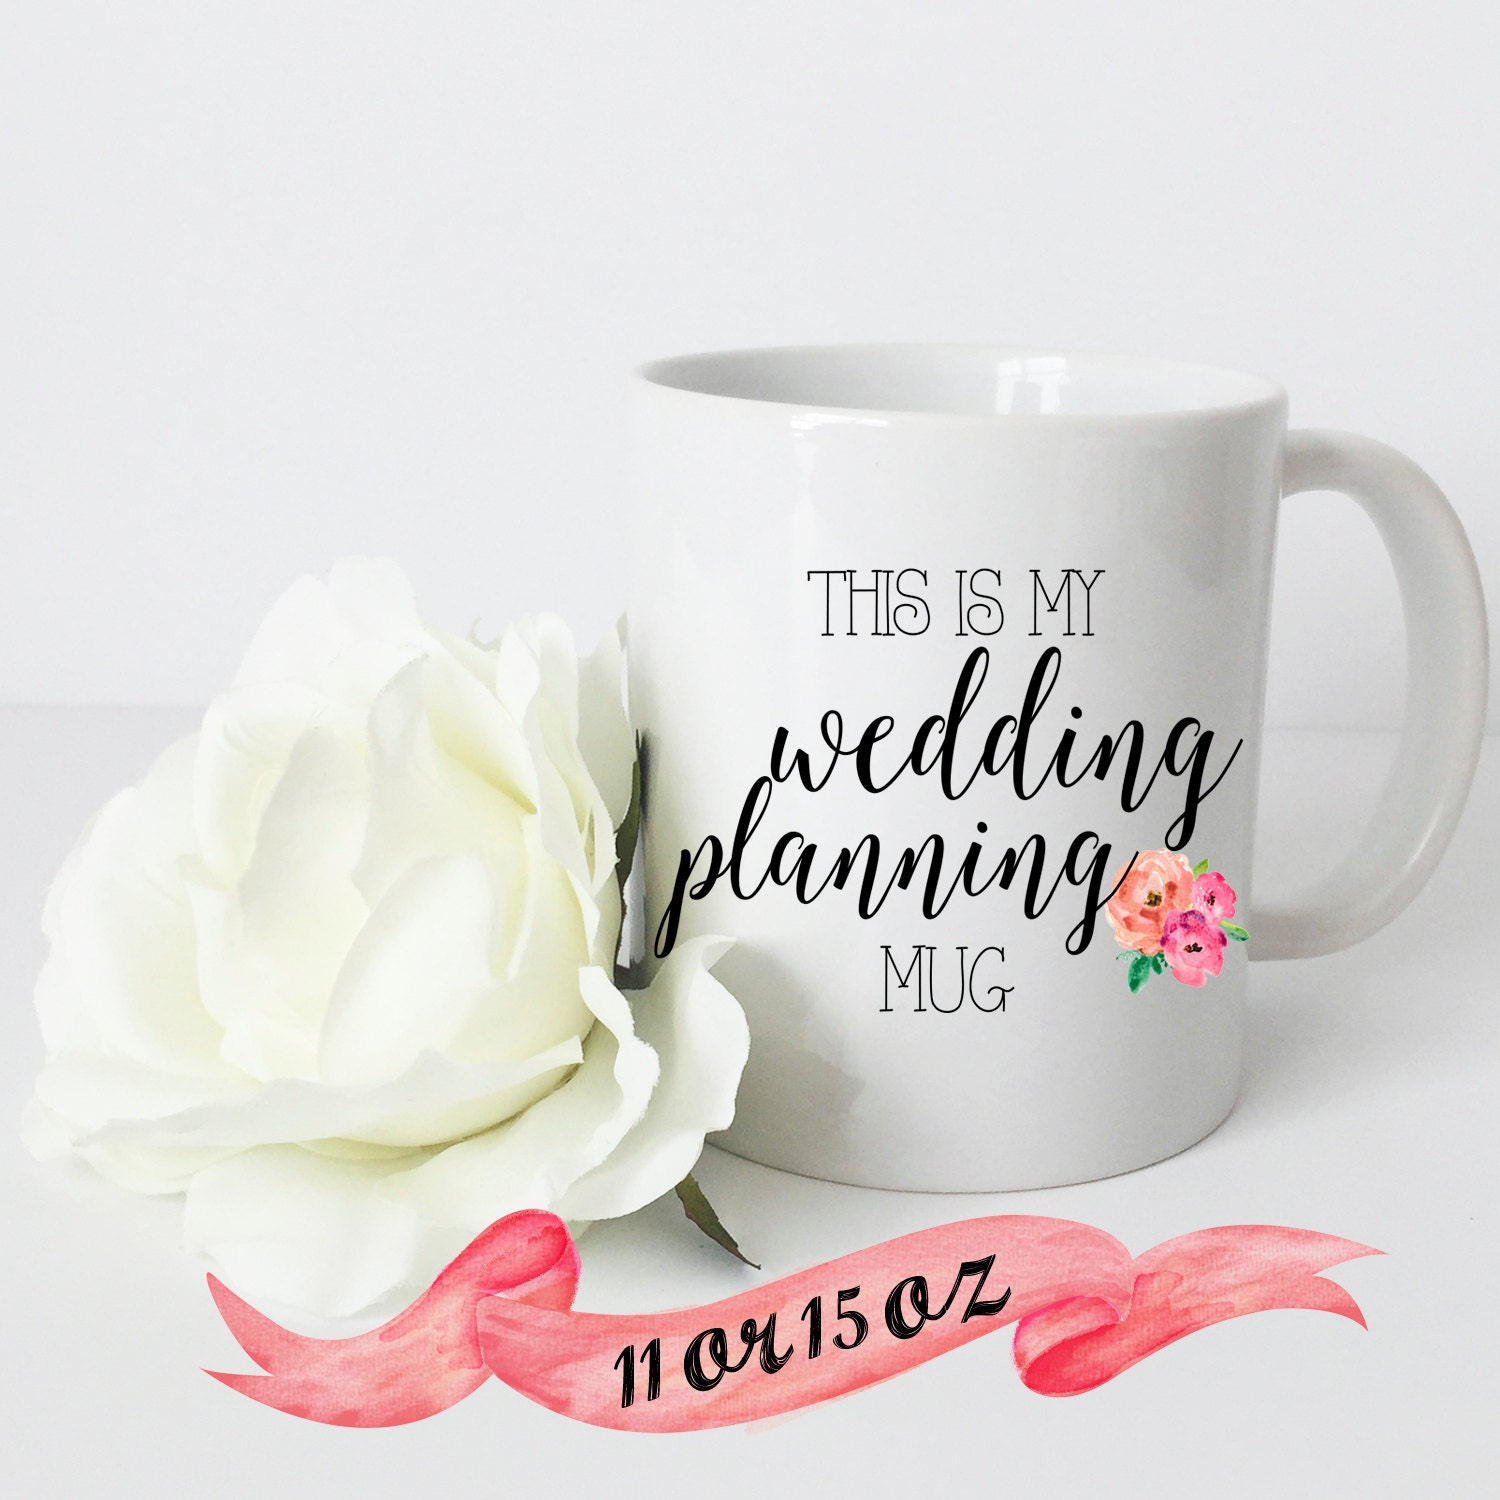 Wedding Planning Mug / Cute Gift for Engagement or Bridal